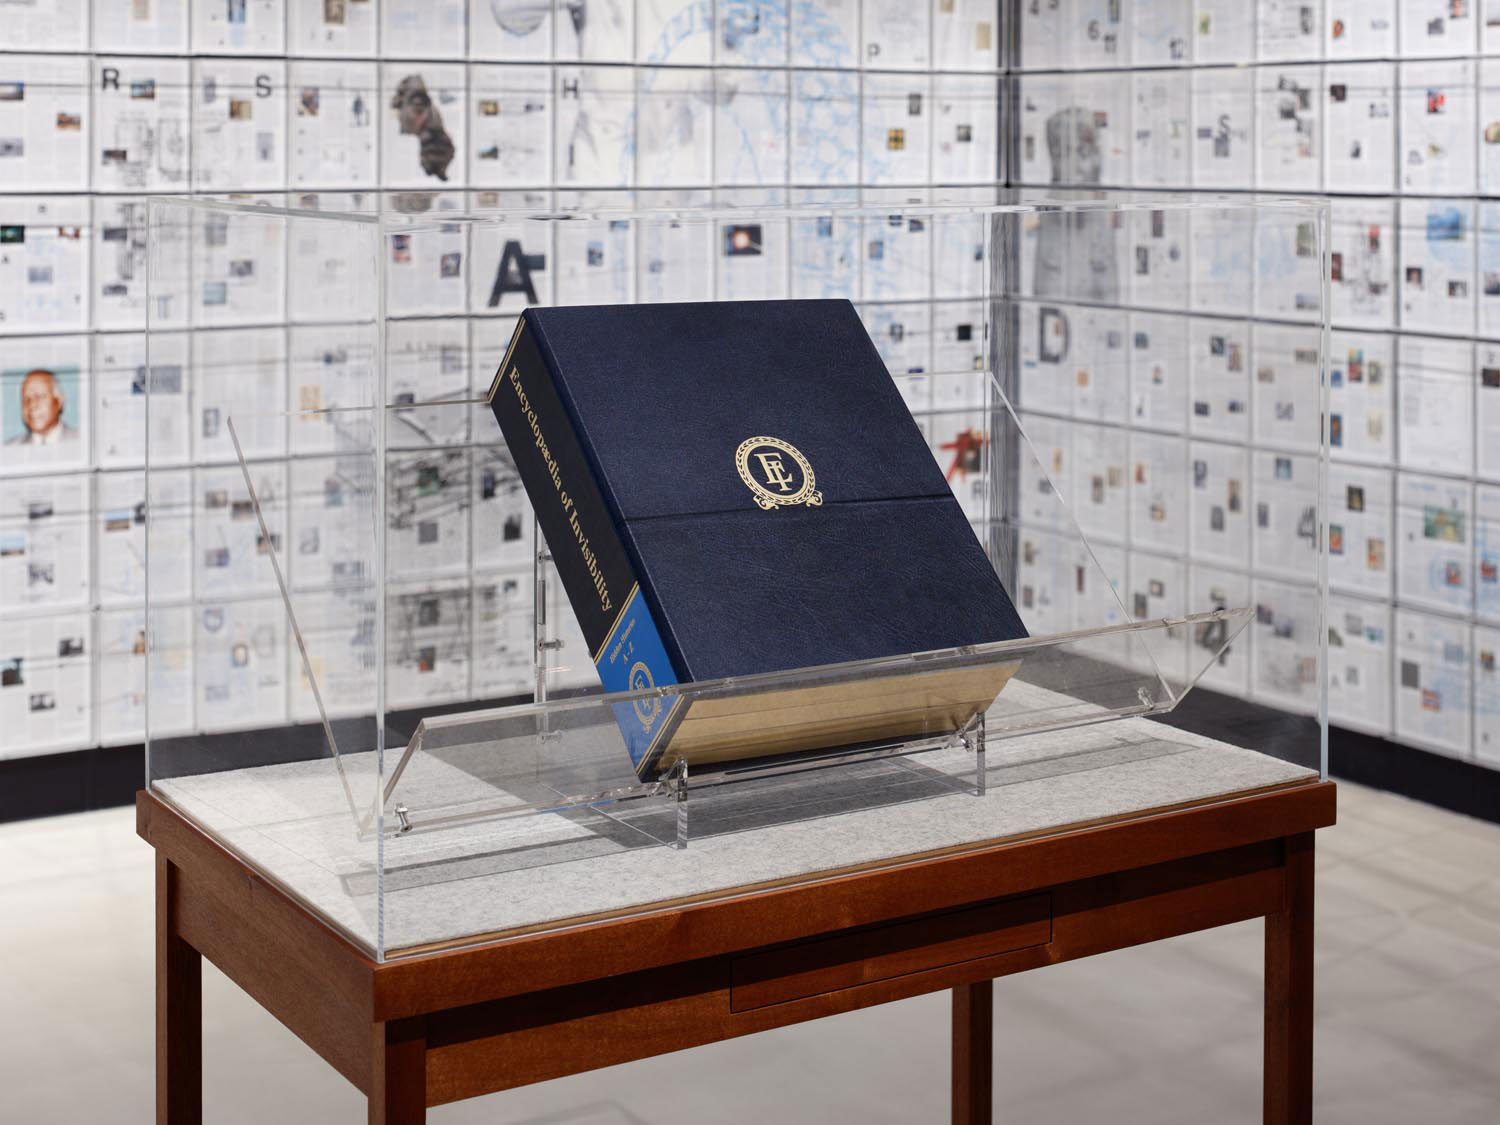 The Encyclopedia of Invisibility (Mahogany #9) (2018; leather, gilding, archival paper, maple, felt, acrylic, book, with stand). Photo courtesy the artist